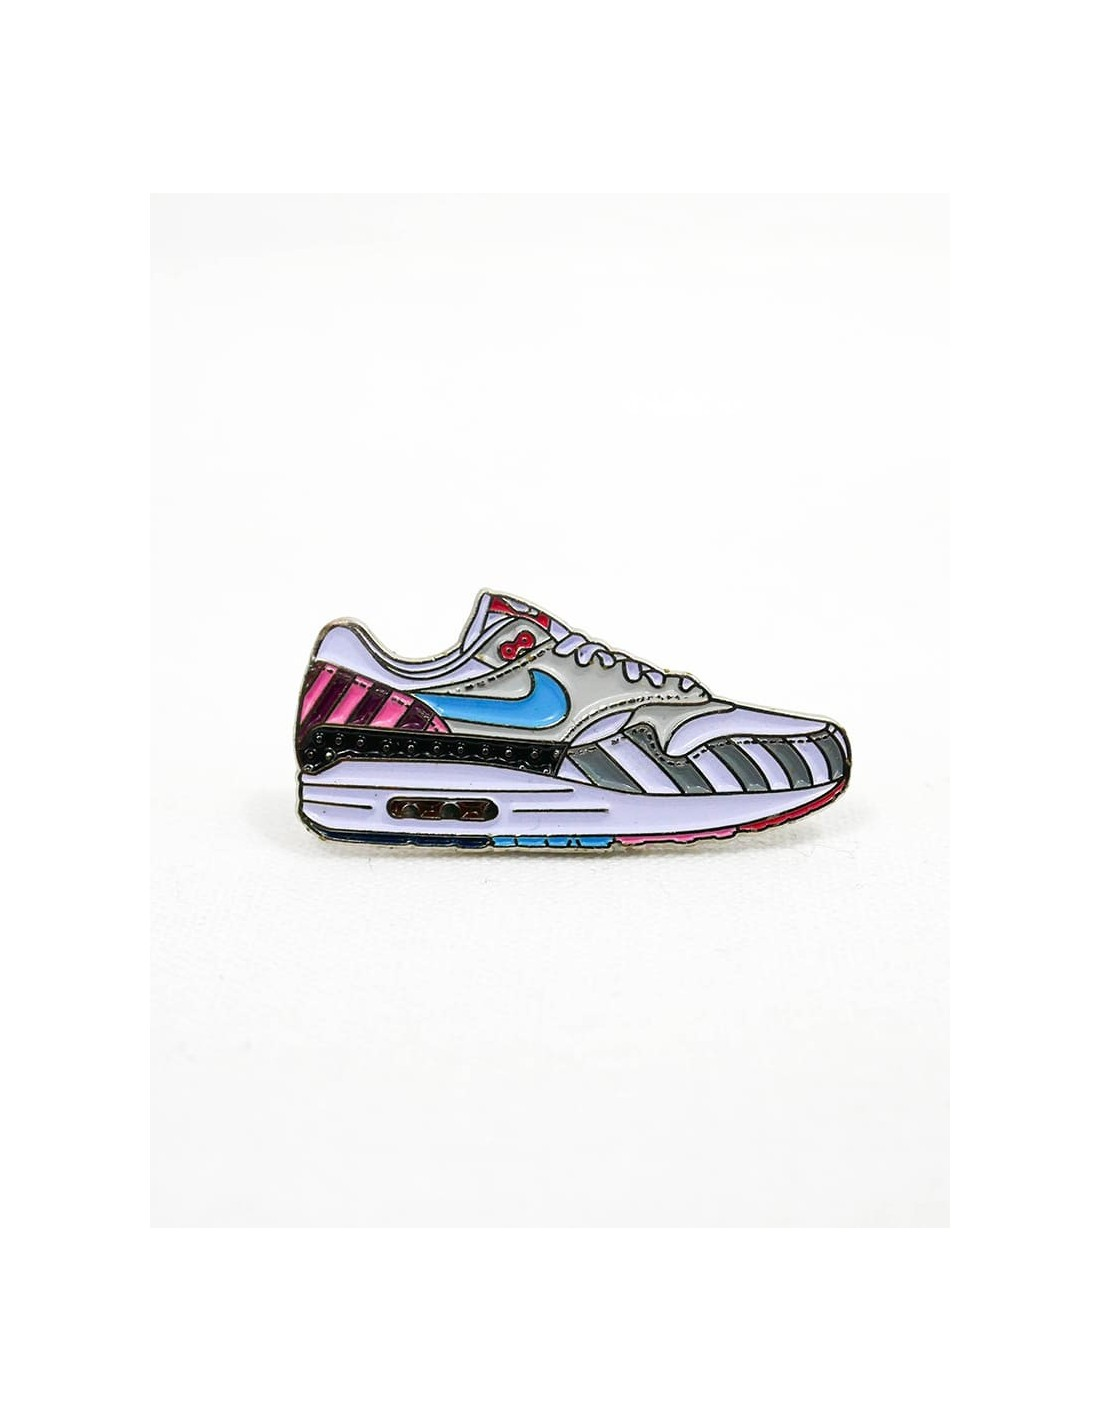 wholesale dealer d4260 27769 Pins Nike air max 1 x Parra 2018 | Fskorp Ltd